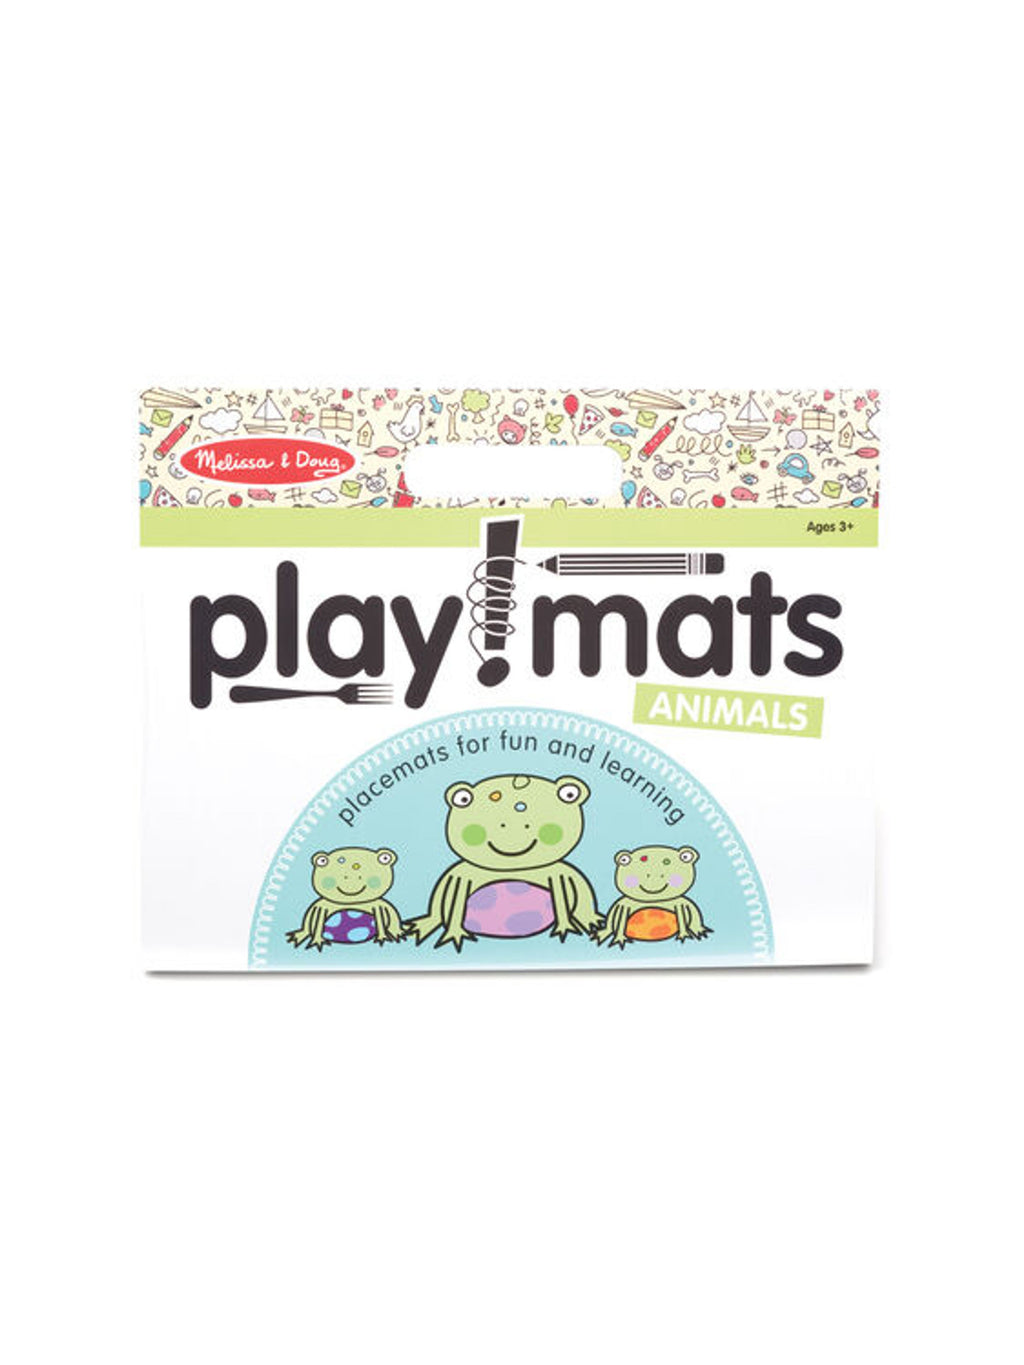 Playmats - Animals